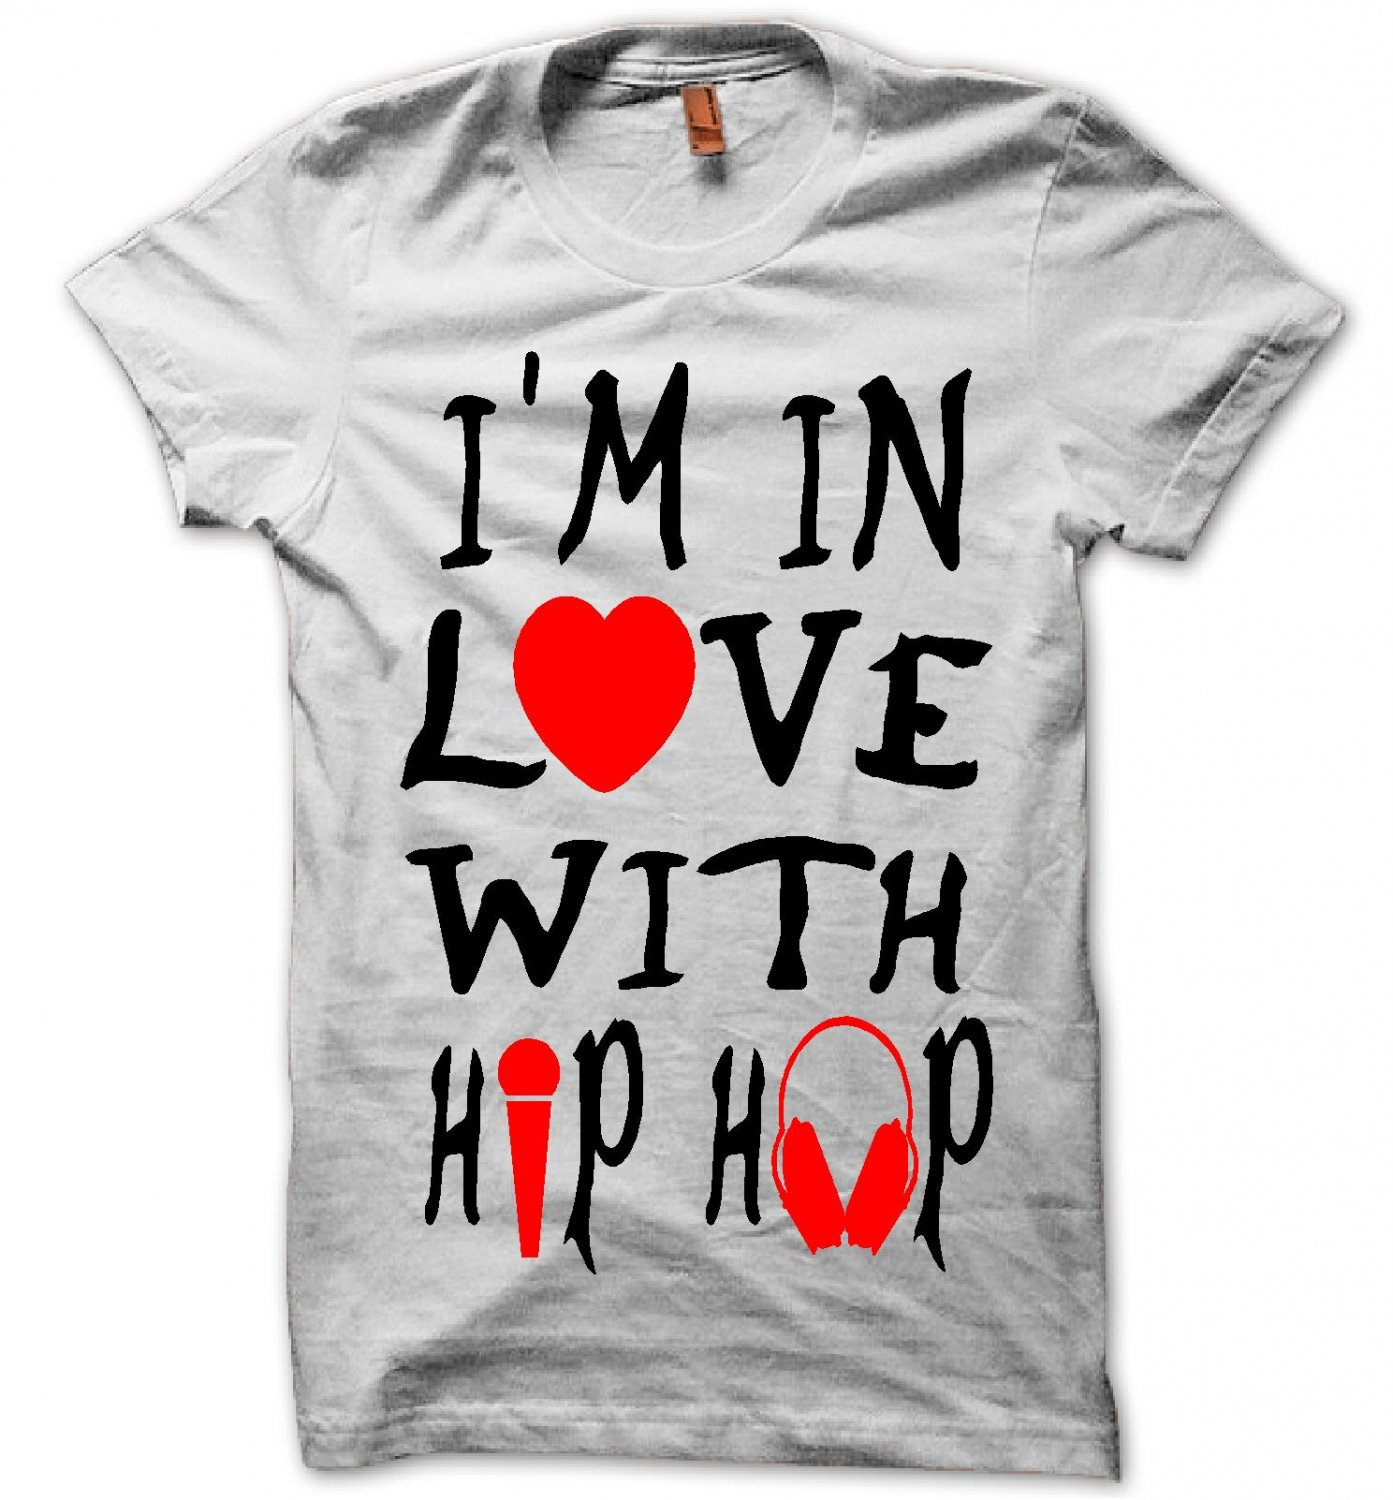 I'M IN LOVE WITH HIP HOP (Women Large)